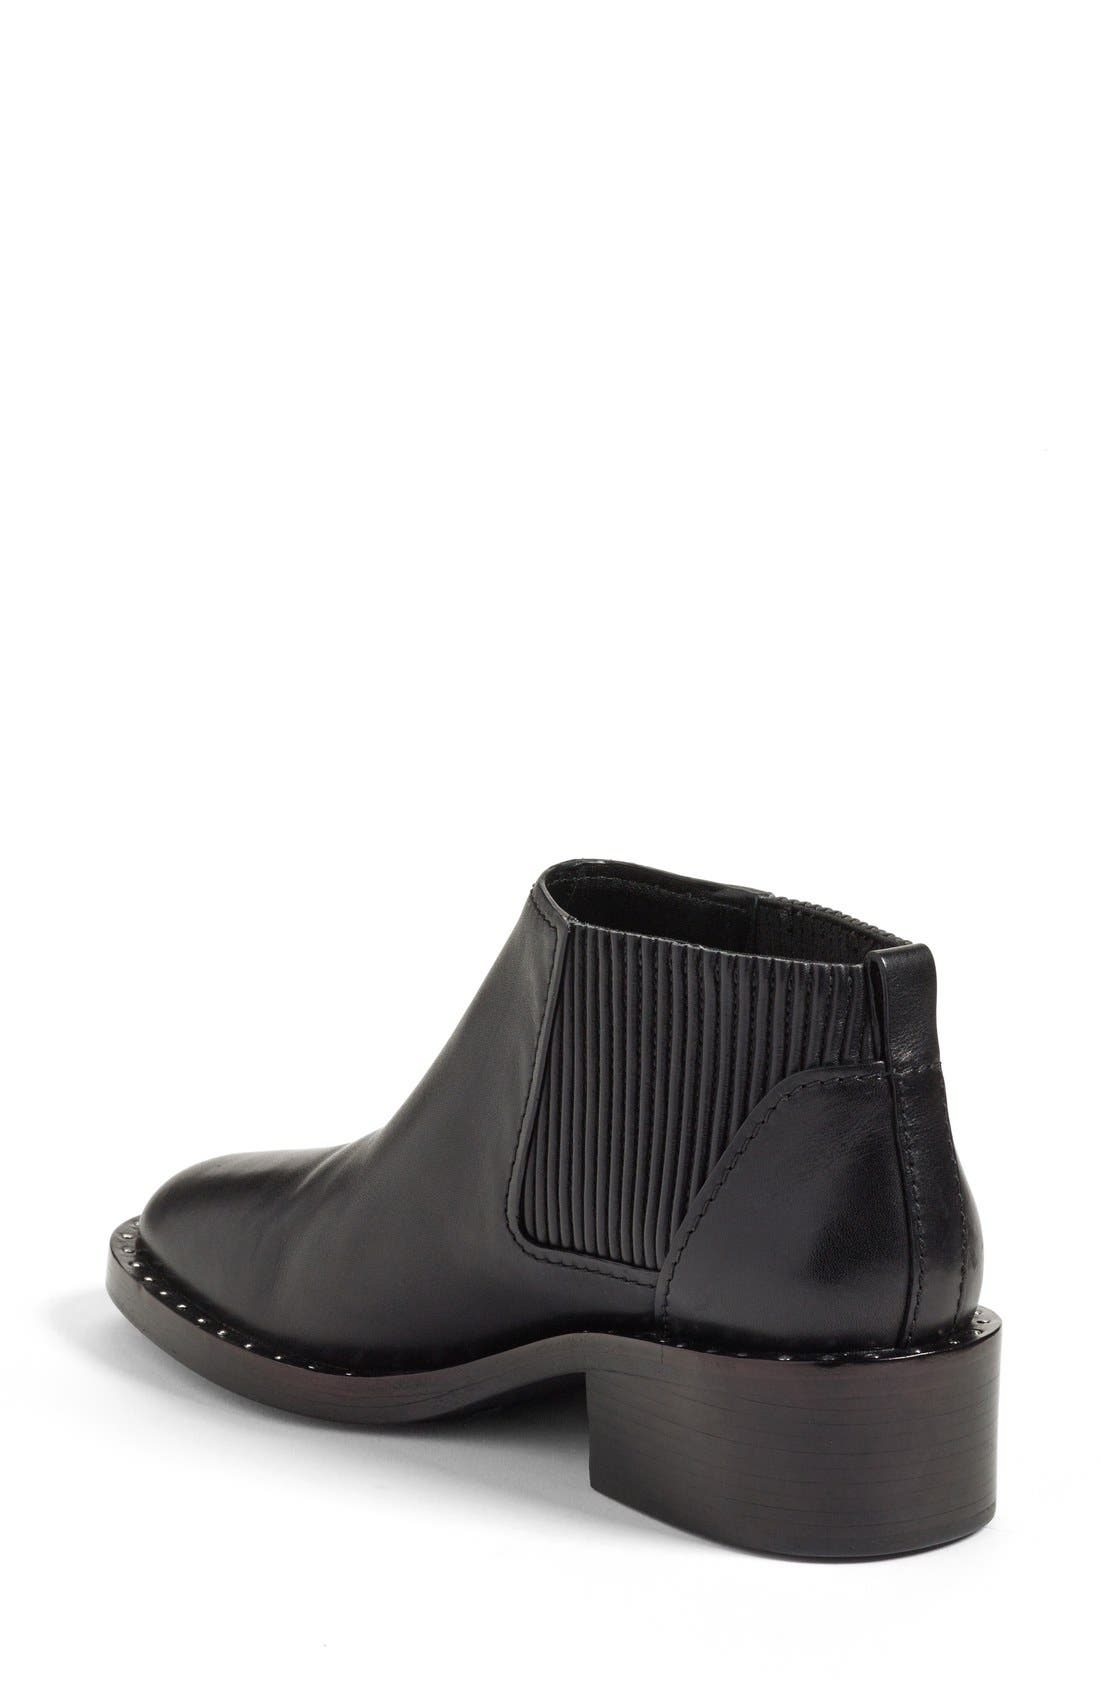 Alternate Image 2  - 3.1 Phillip Lim 'Alexa' Bootie (Women)